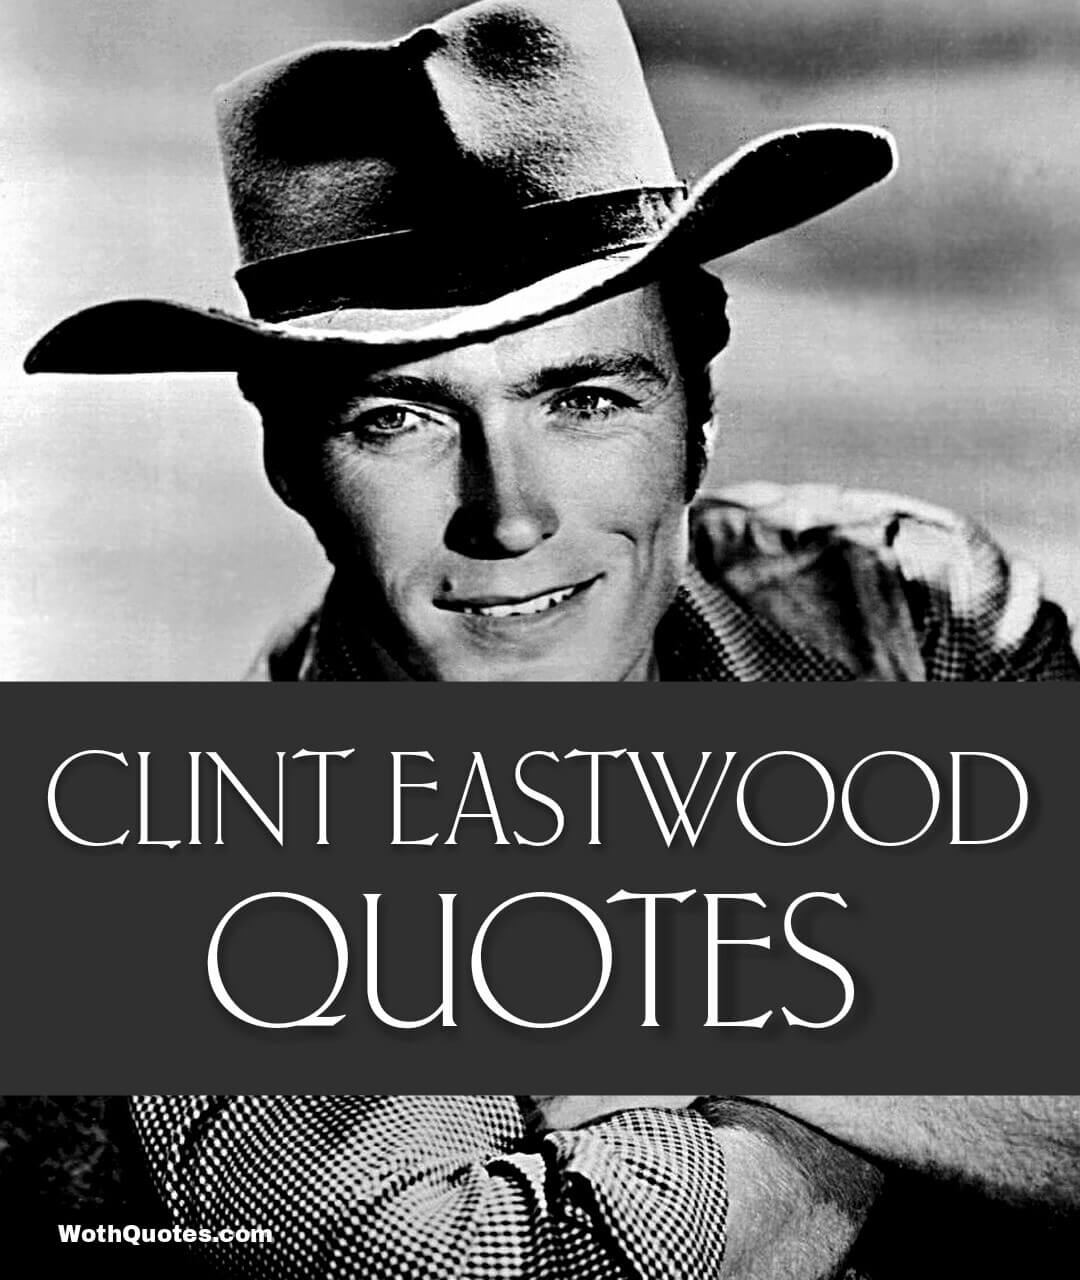 41 Clint Eastwood Quotes - WothQuotes | WOTHQUOTES COLLECTION